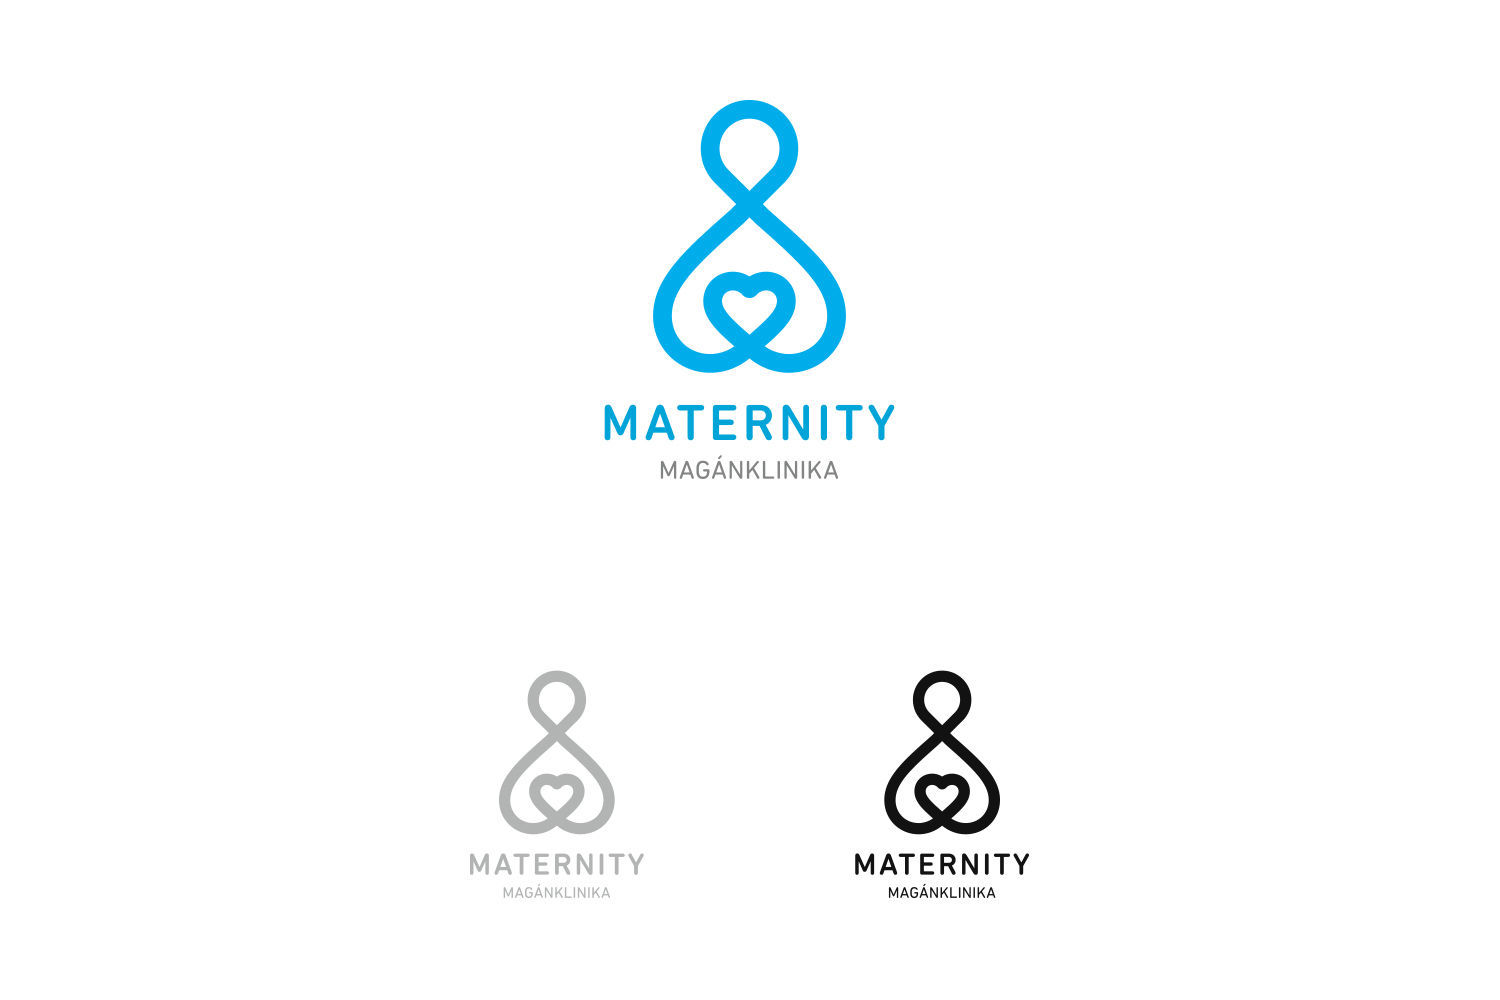 Maternity  - 1 by José Simon